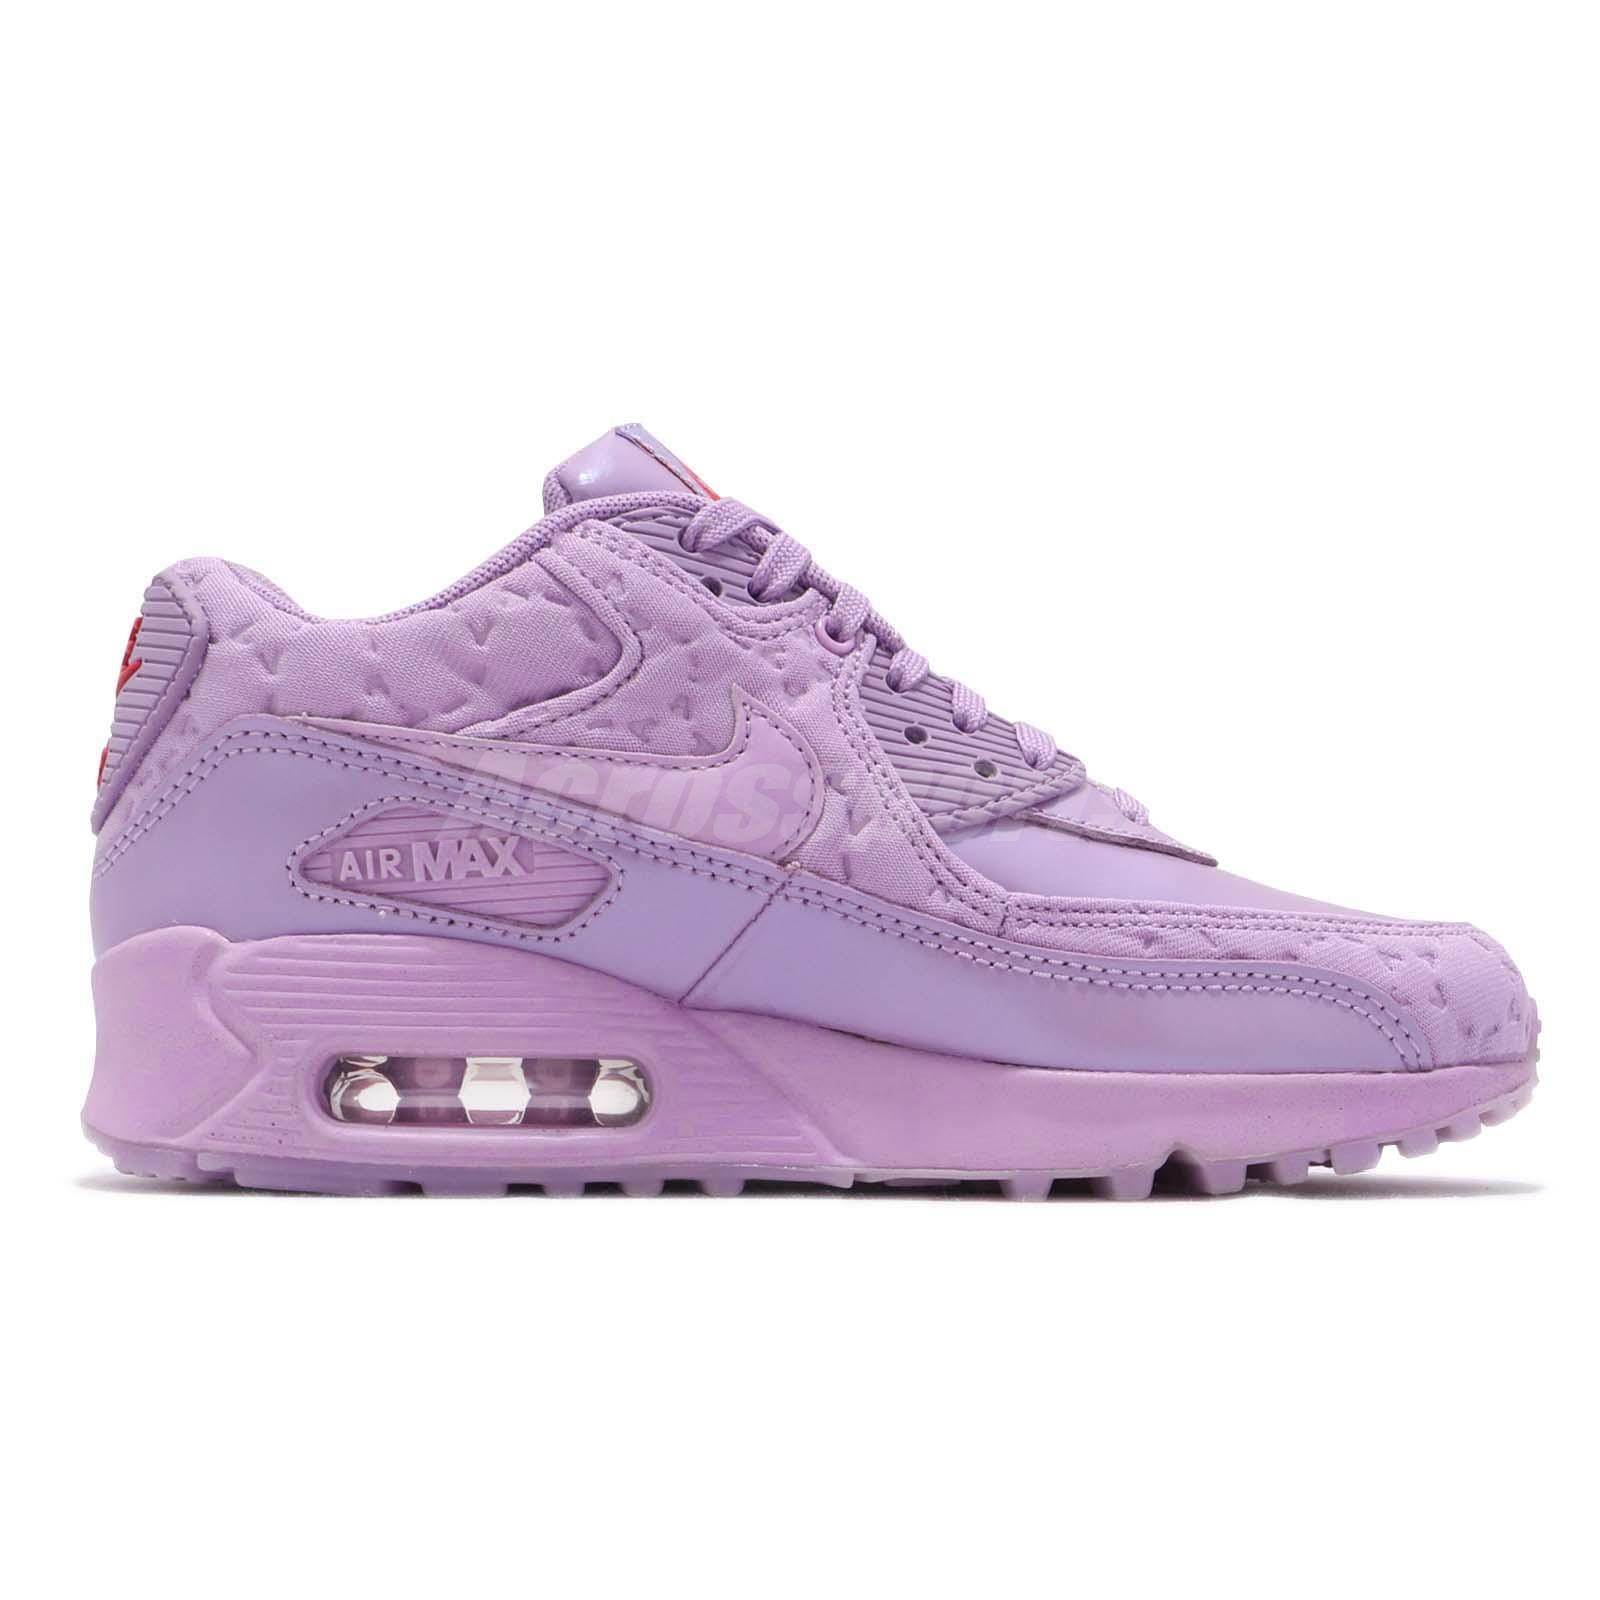 Nike Wmns Air Max 90 QS Paris Macaron Purple Women Running Shoes 813150500